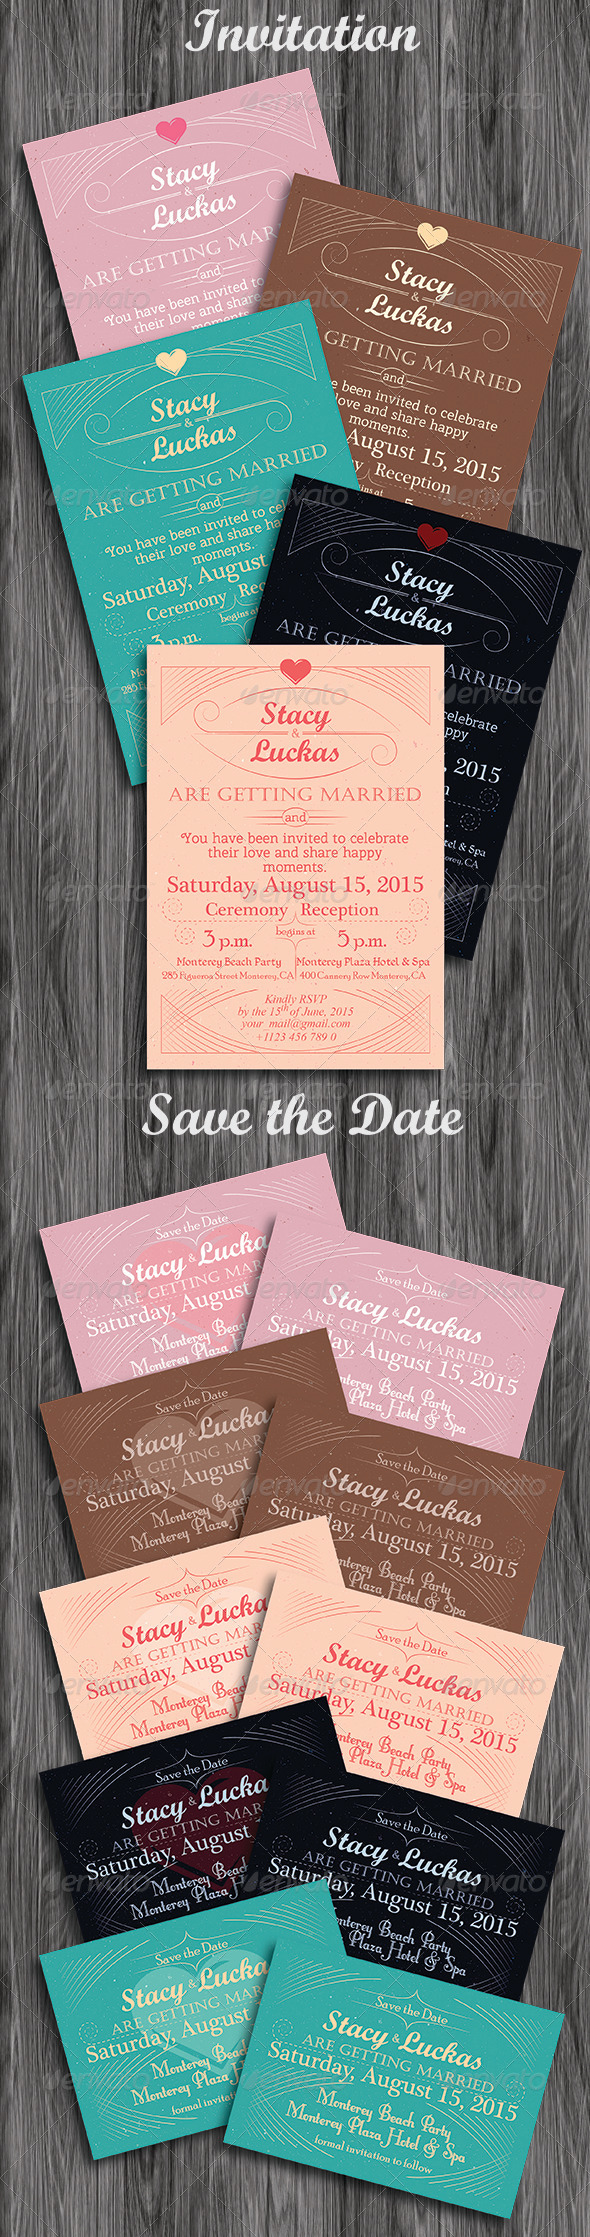 GraphicRiver Invitation and Save the Date Cards 5429397